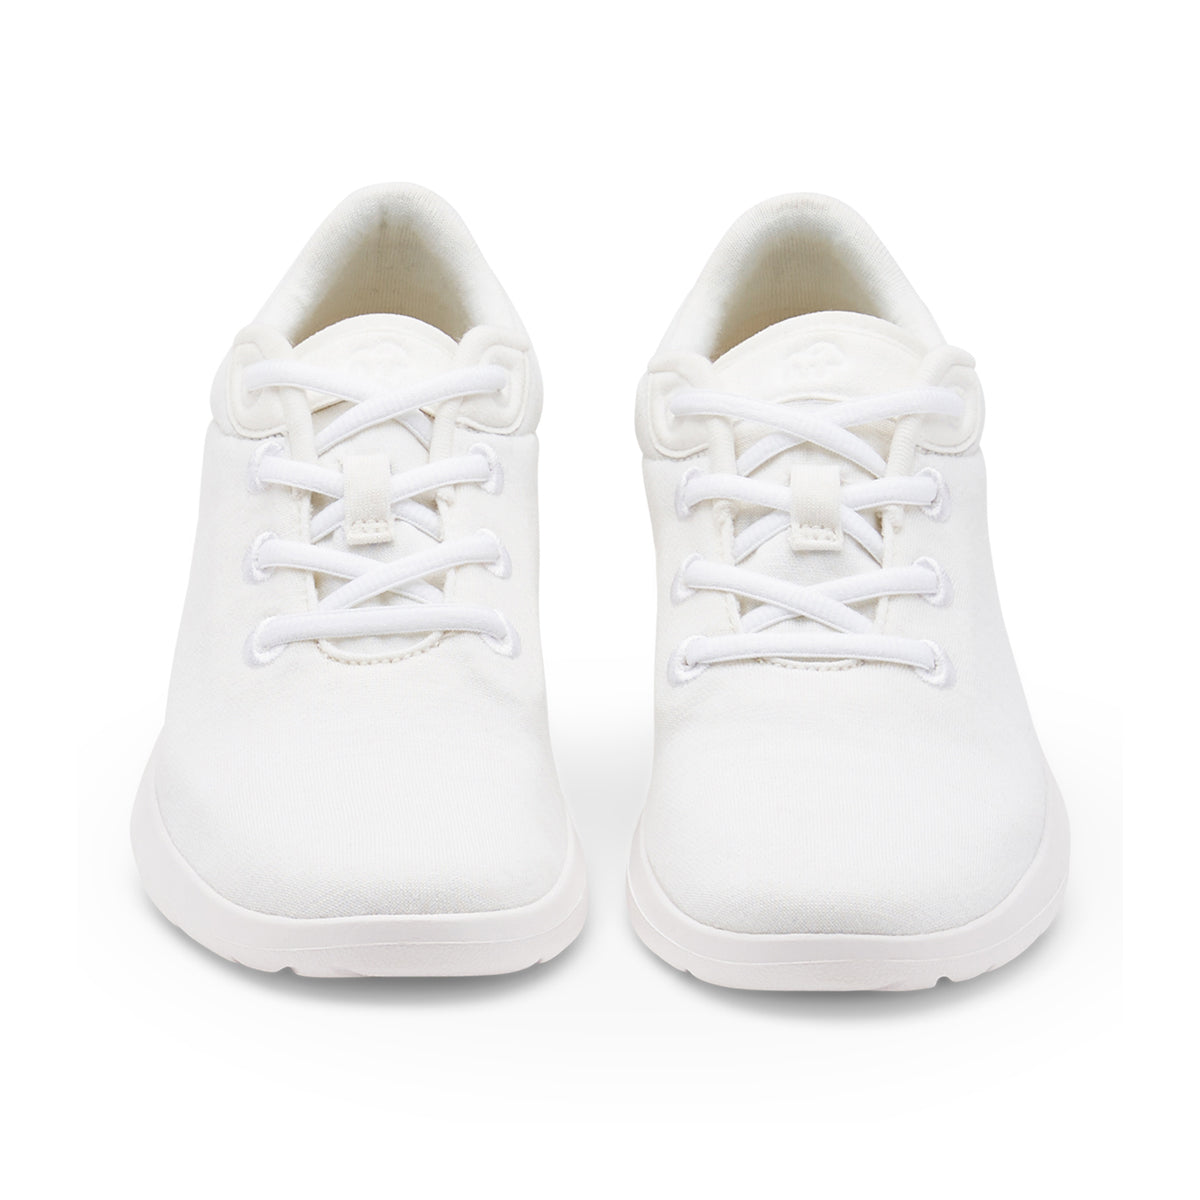 Men's Lace-Ups White